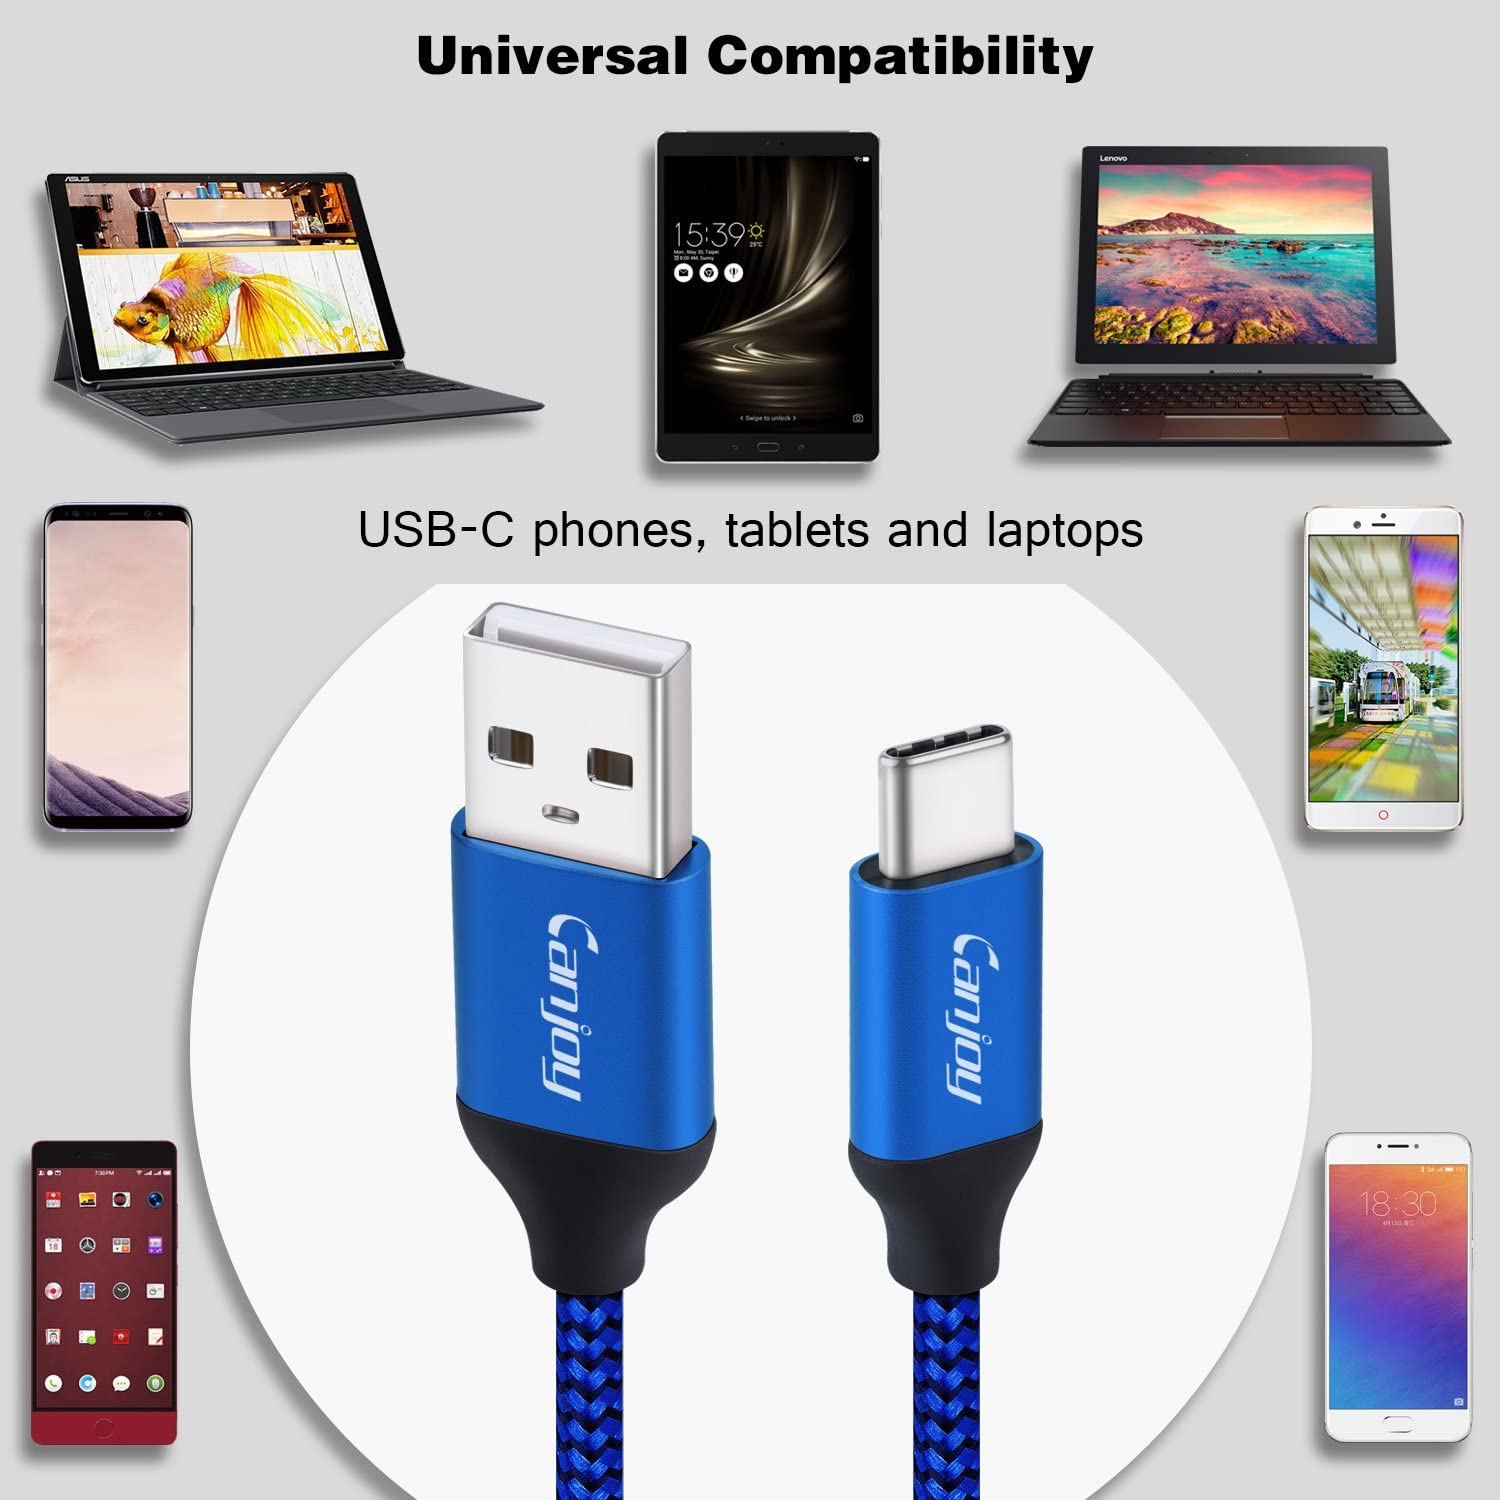 USB Type C Cable Canjoy 2 Pack 6ft Braided USB C Cable Fast Charger Cord Compatible with Samsung Galaxy S10 //S10E //S10 Plus,S9 //S9 Plus,S8//S8 Plus,Note 10//9//8